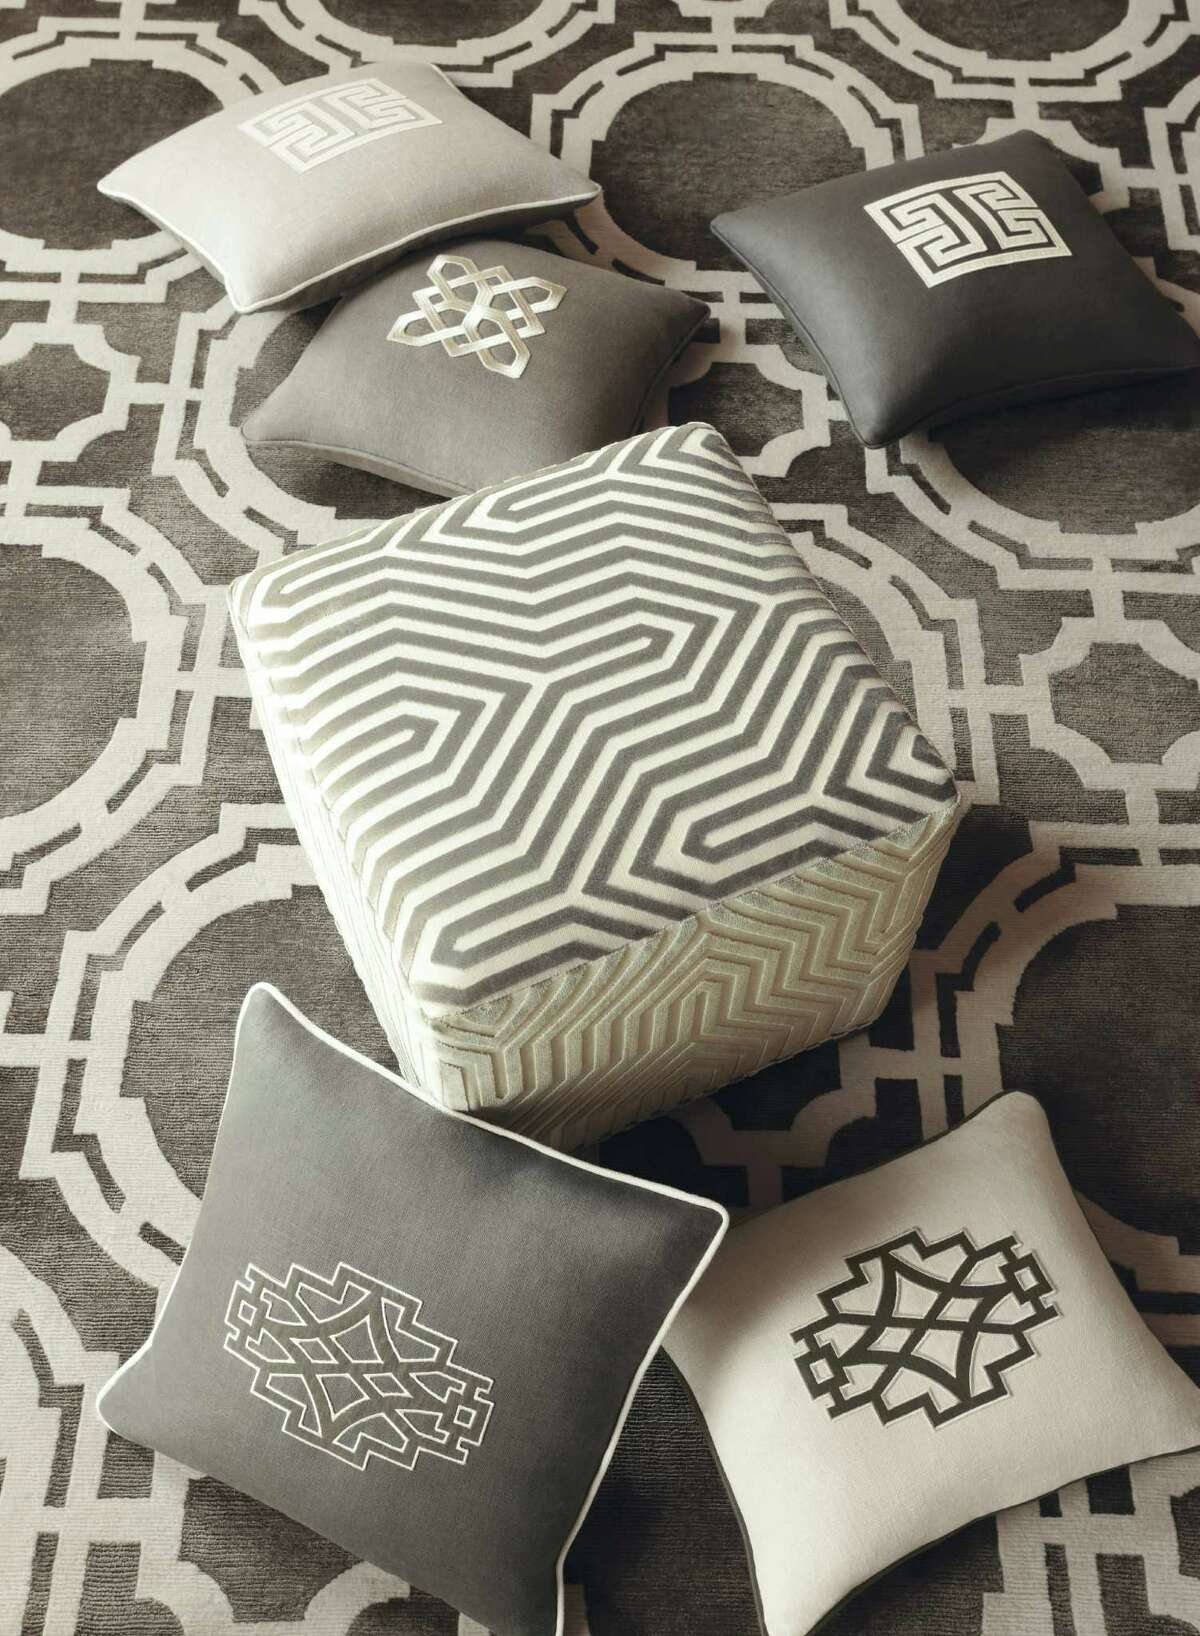 Mary McDonald's new collection of fabrics for Schumacher and rugs for Patterson, Flynn & Martin